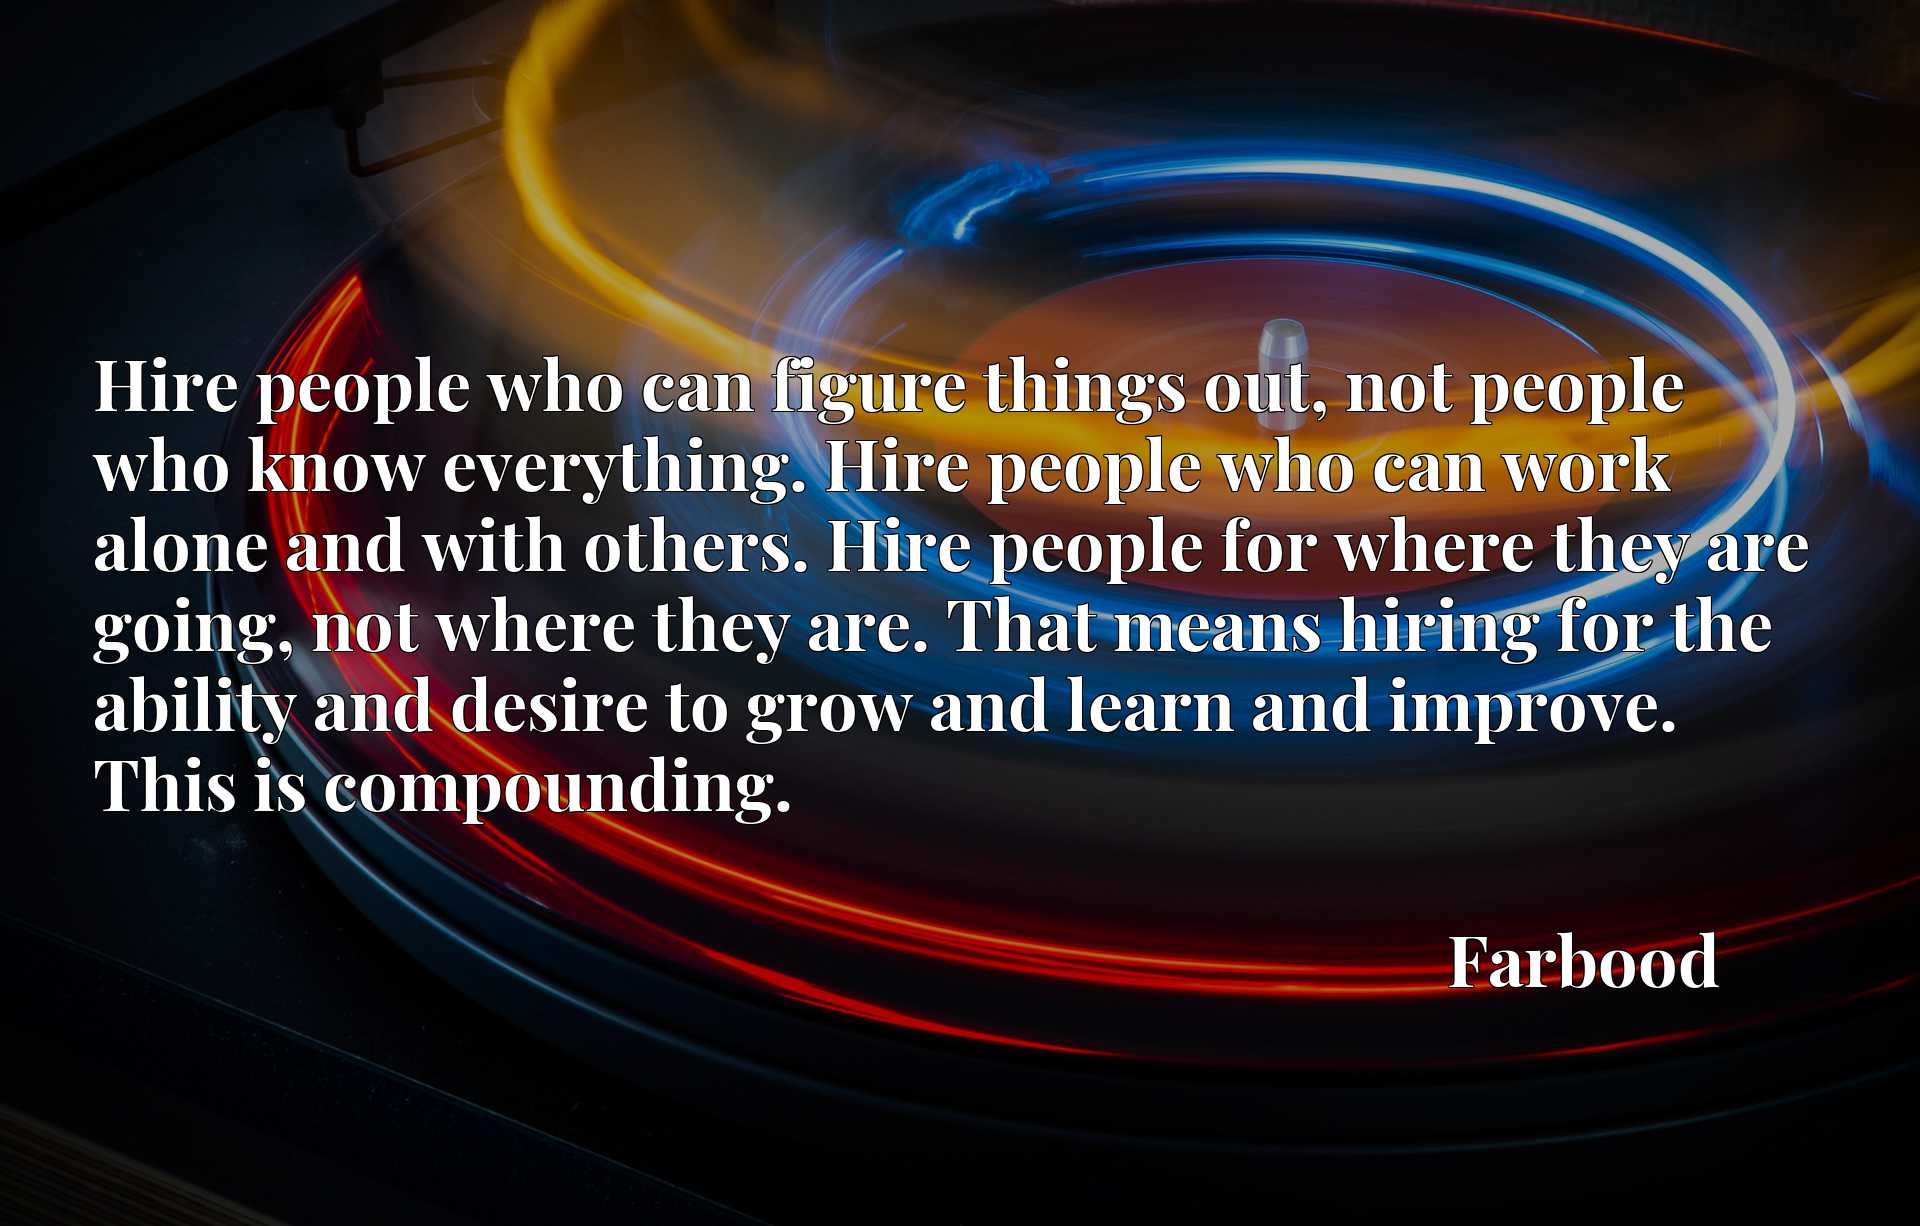 Hire people who can figure things out, not people who know everything. Hire people who can work alone and with others. Hire people for where they are going, not where they are. That means hiring for the ability and desire to grow and learn and improve. This is compounding.